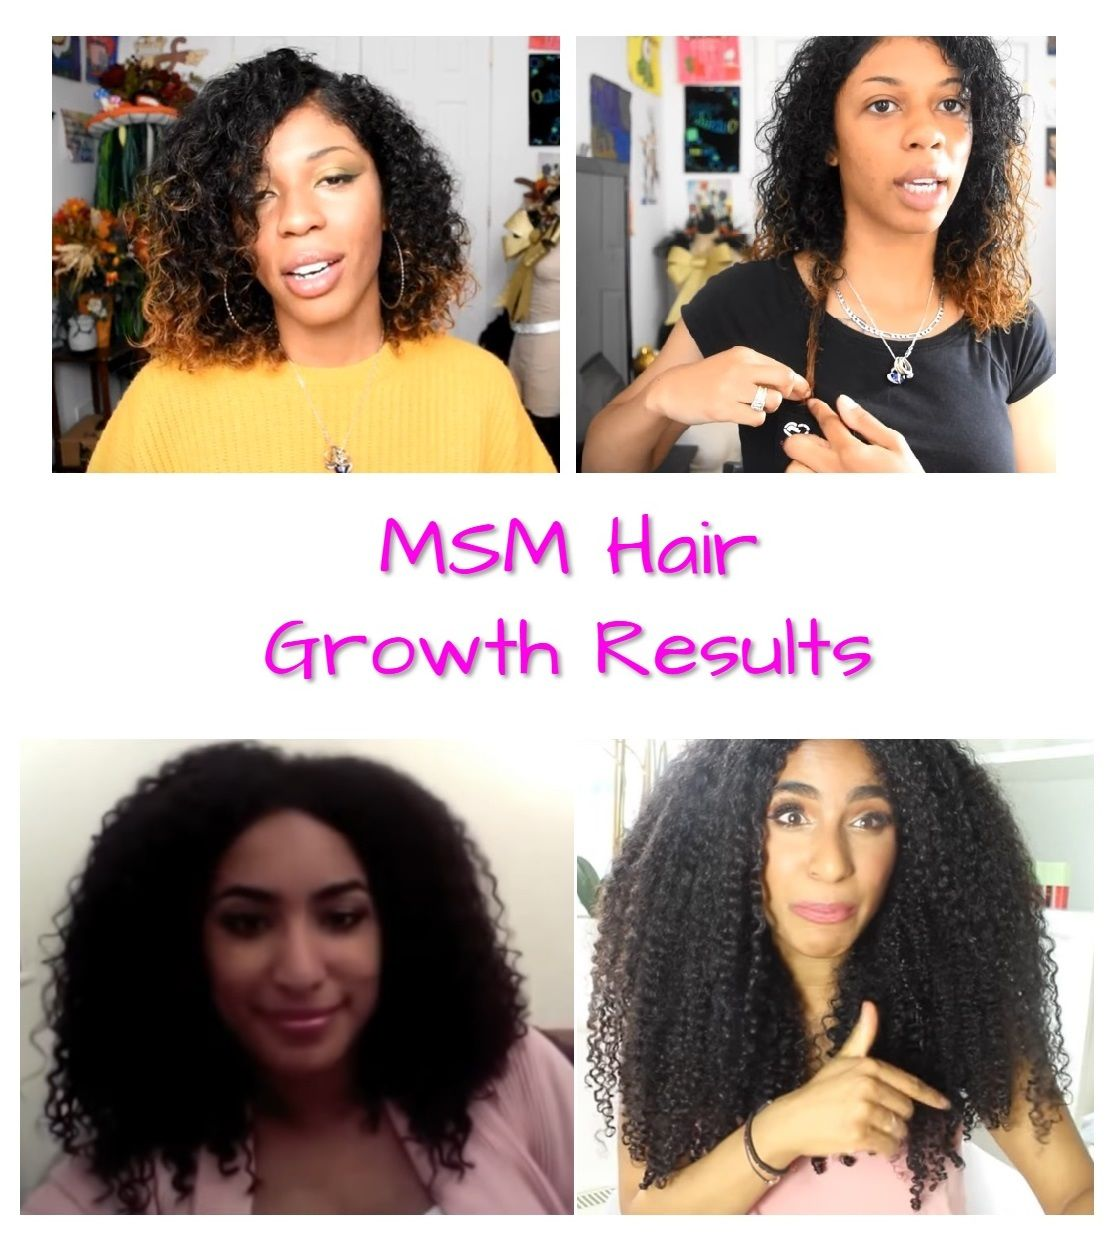 Msm Hair Growth Before And After Pictures Msm Hair Growth Natural Hair Styles Natural Hair Product Reviews